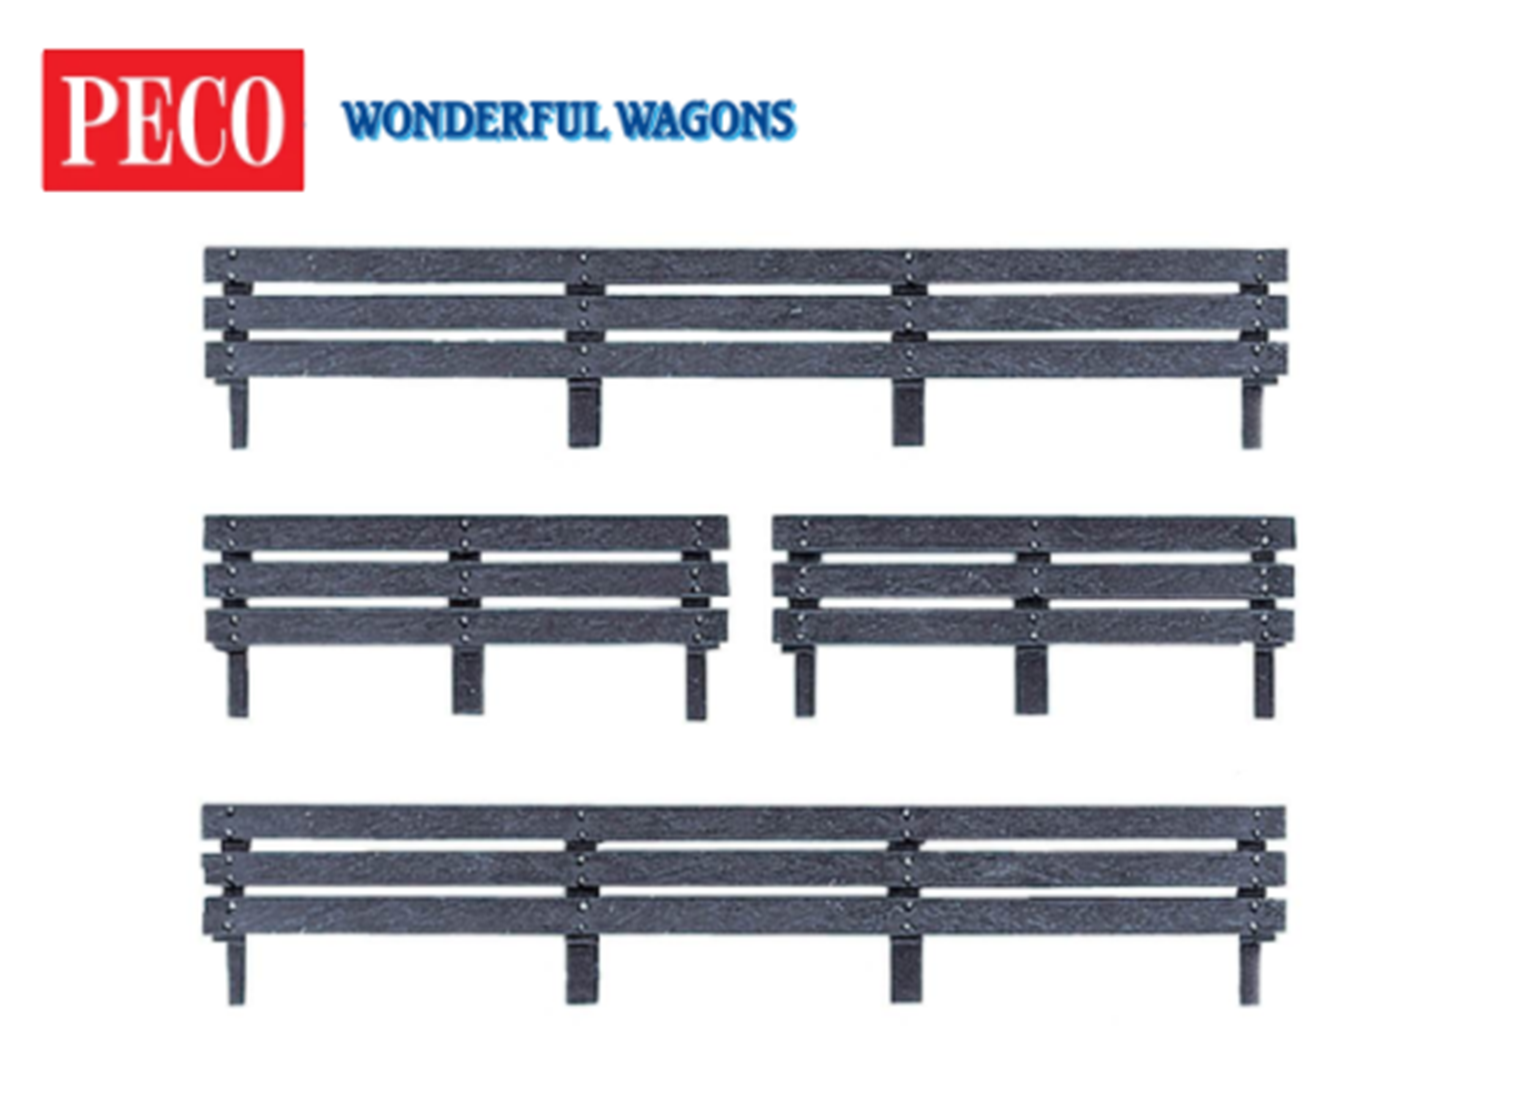 Peco R-6 Coke extension board kit for 7 plank wagons